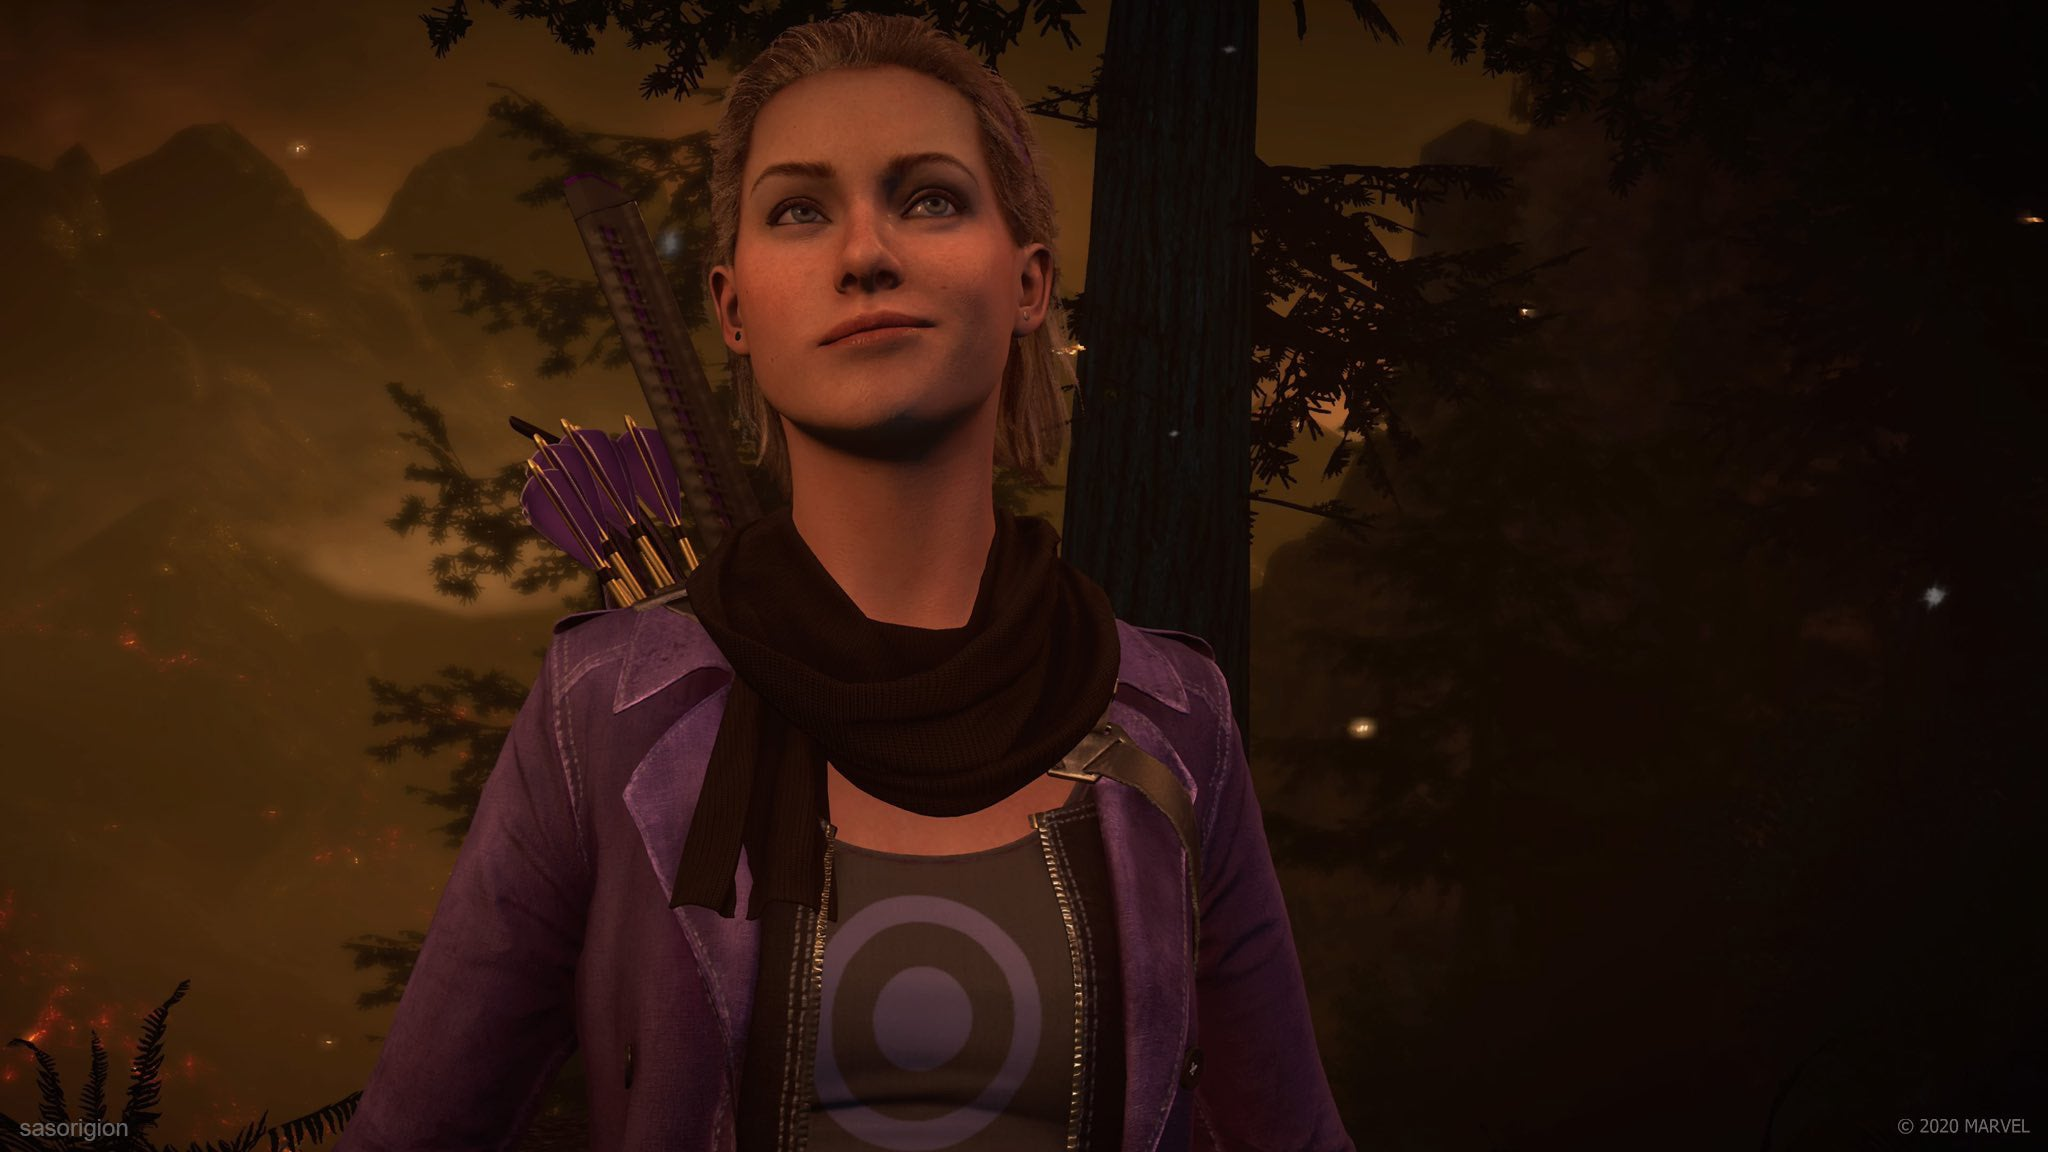 a photo mode screenshot of Kate-Hawkeye in a smoky forest